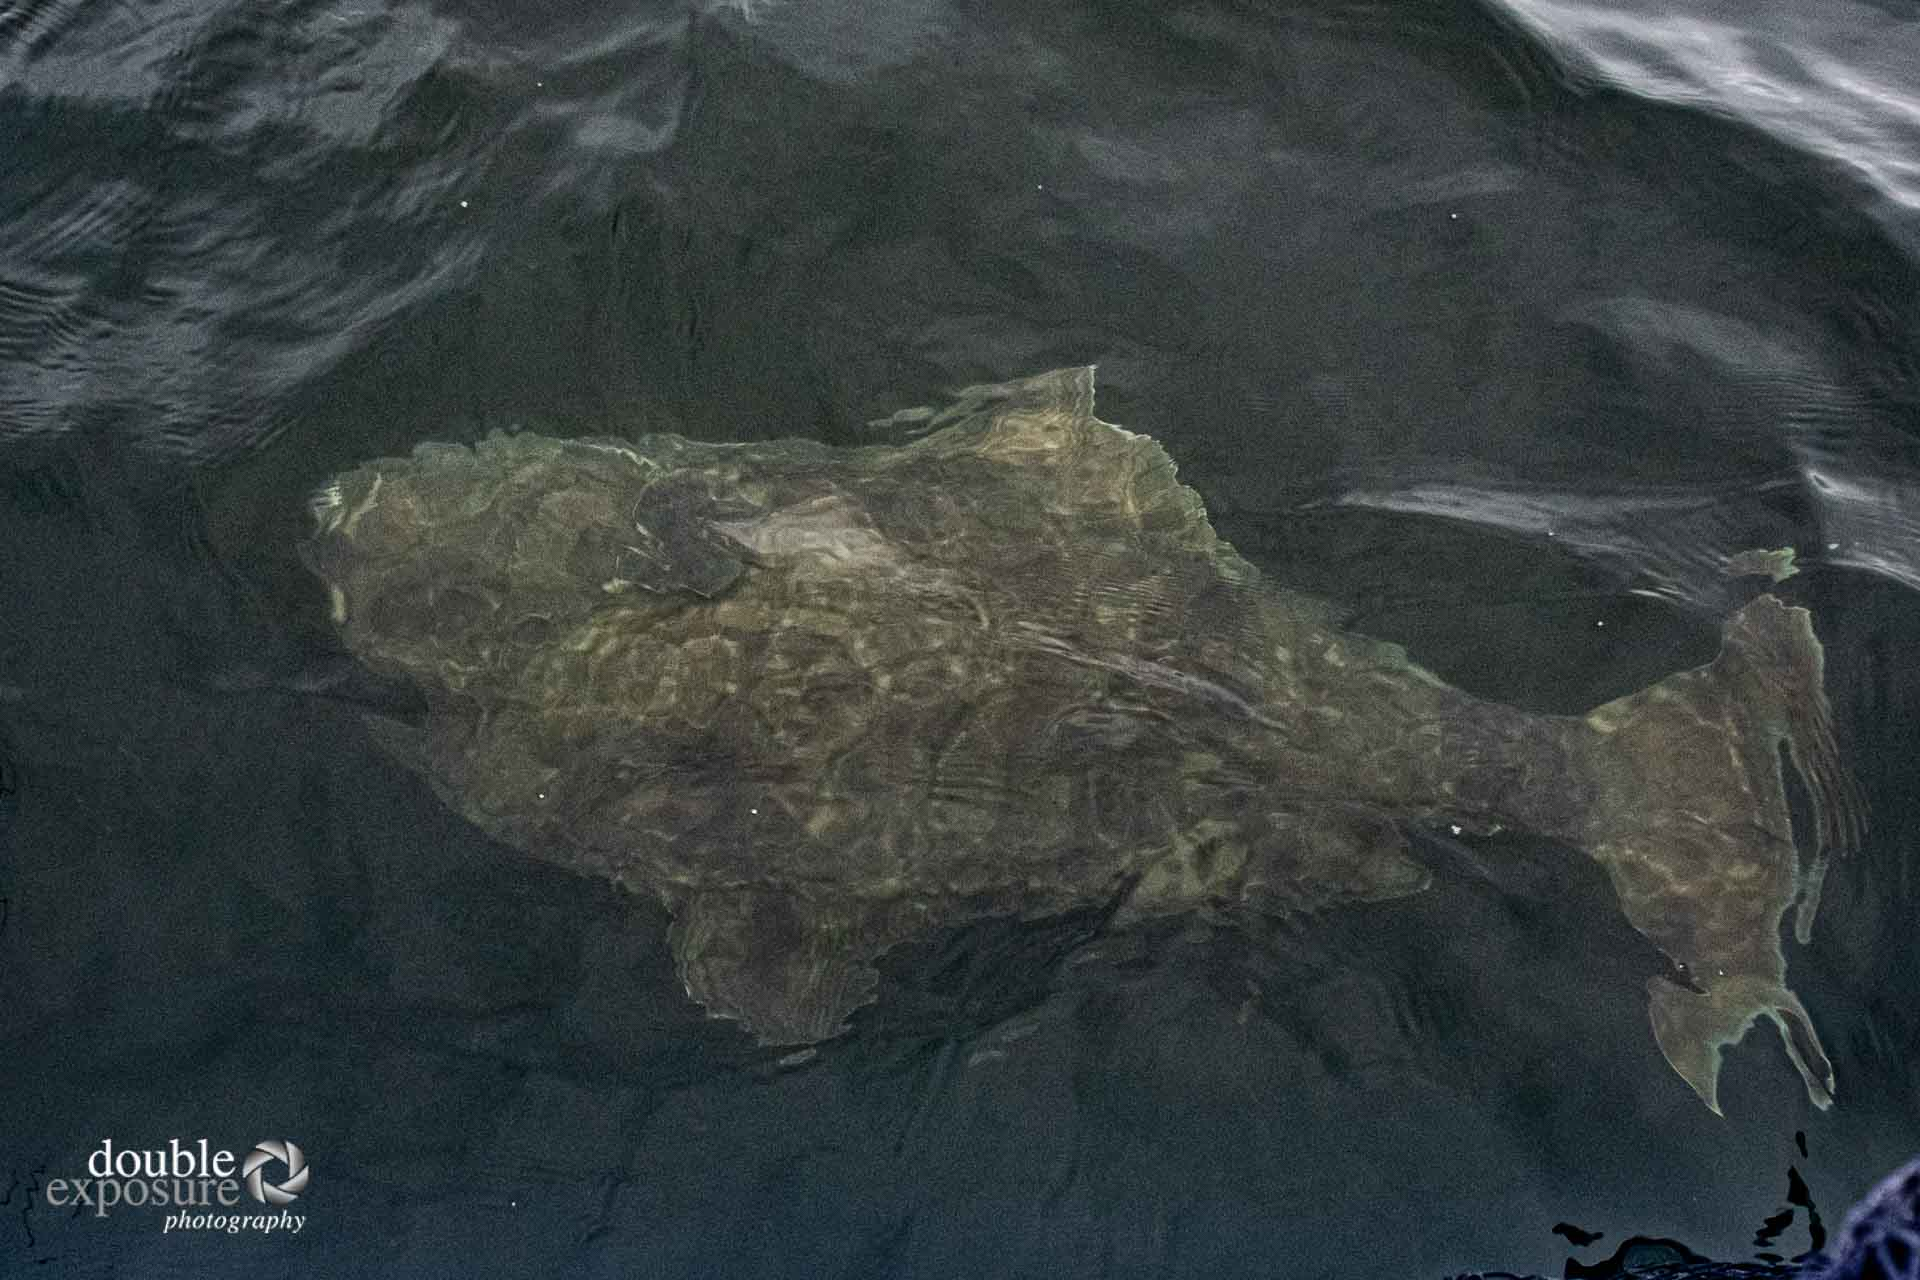 halibut next to boat